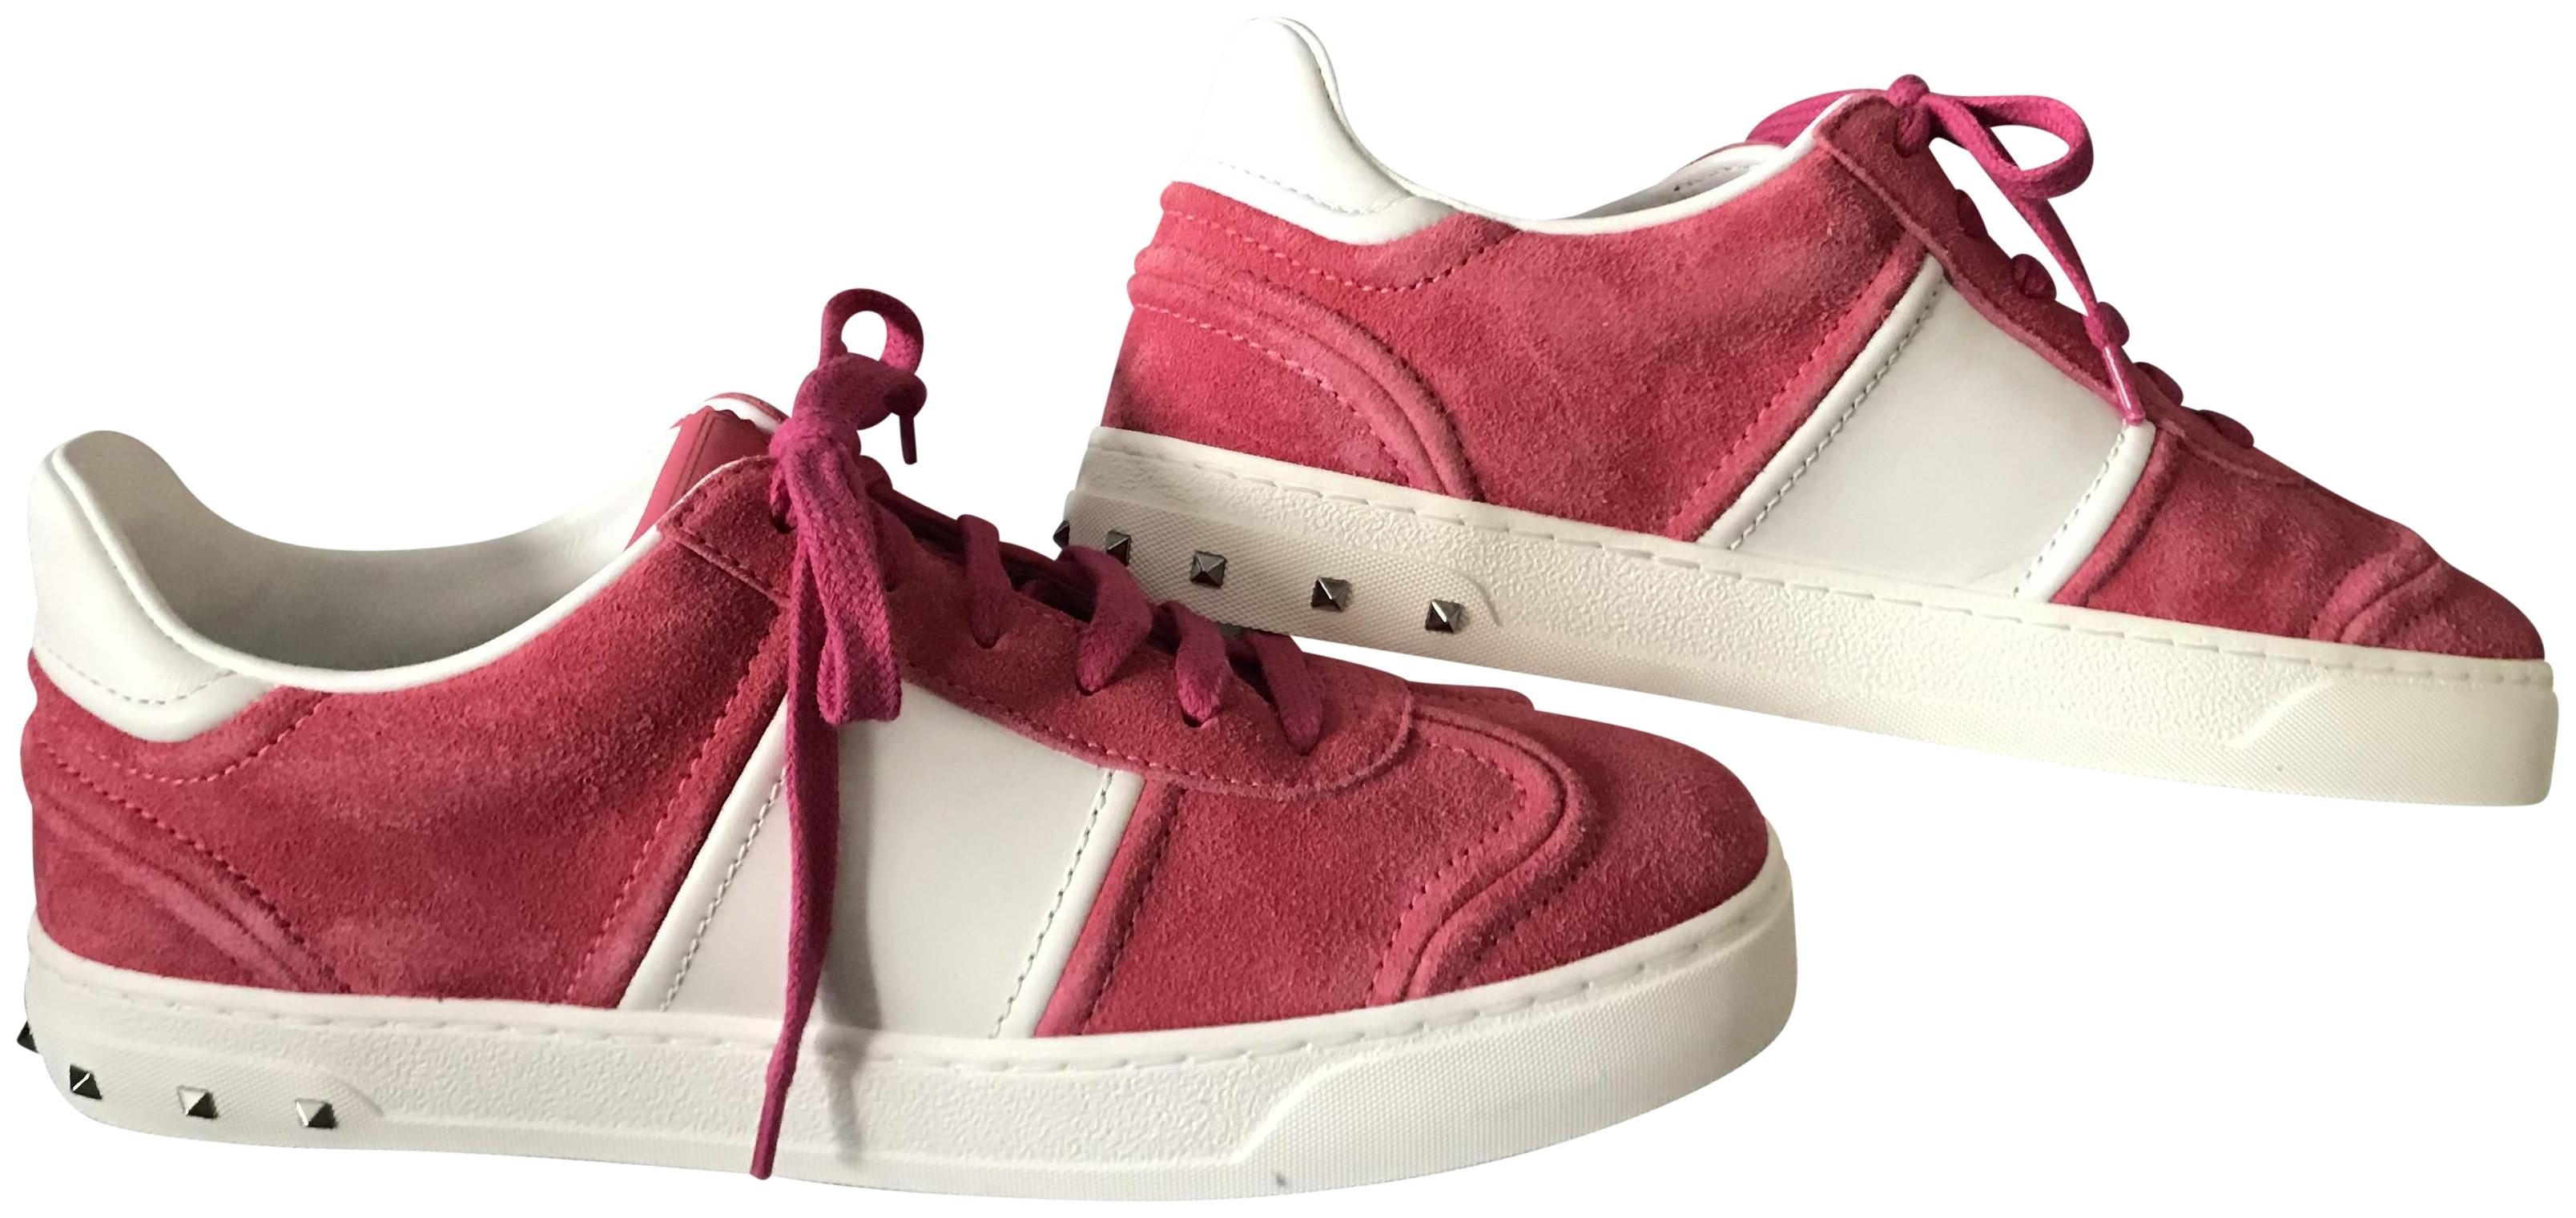 Valentino Pink White Rockstud Fly Crew Low Suede Sneakers Size EU 36.5 (Approx. US 6.5) Regular (M, B)